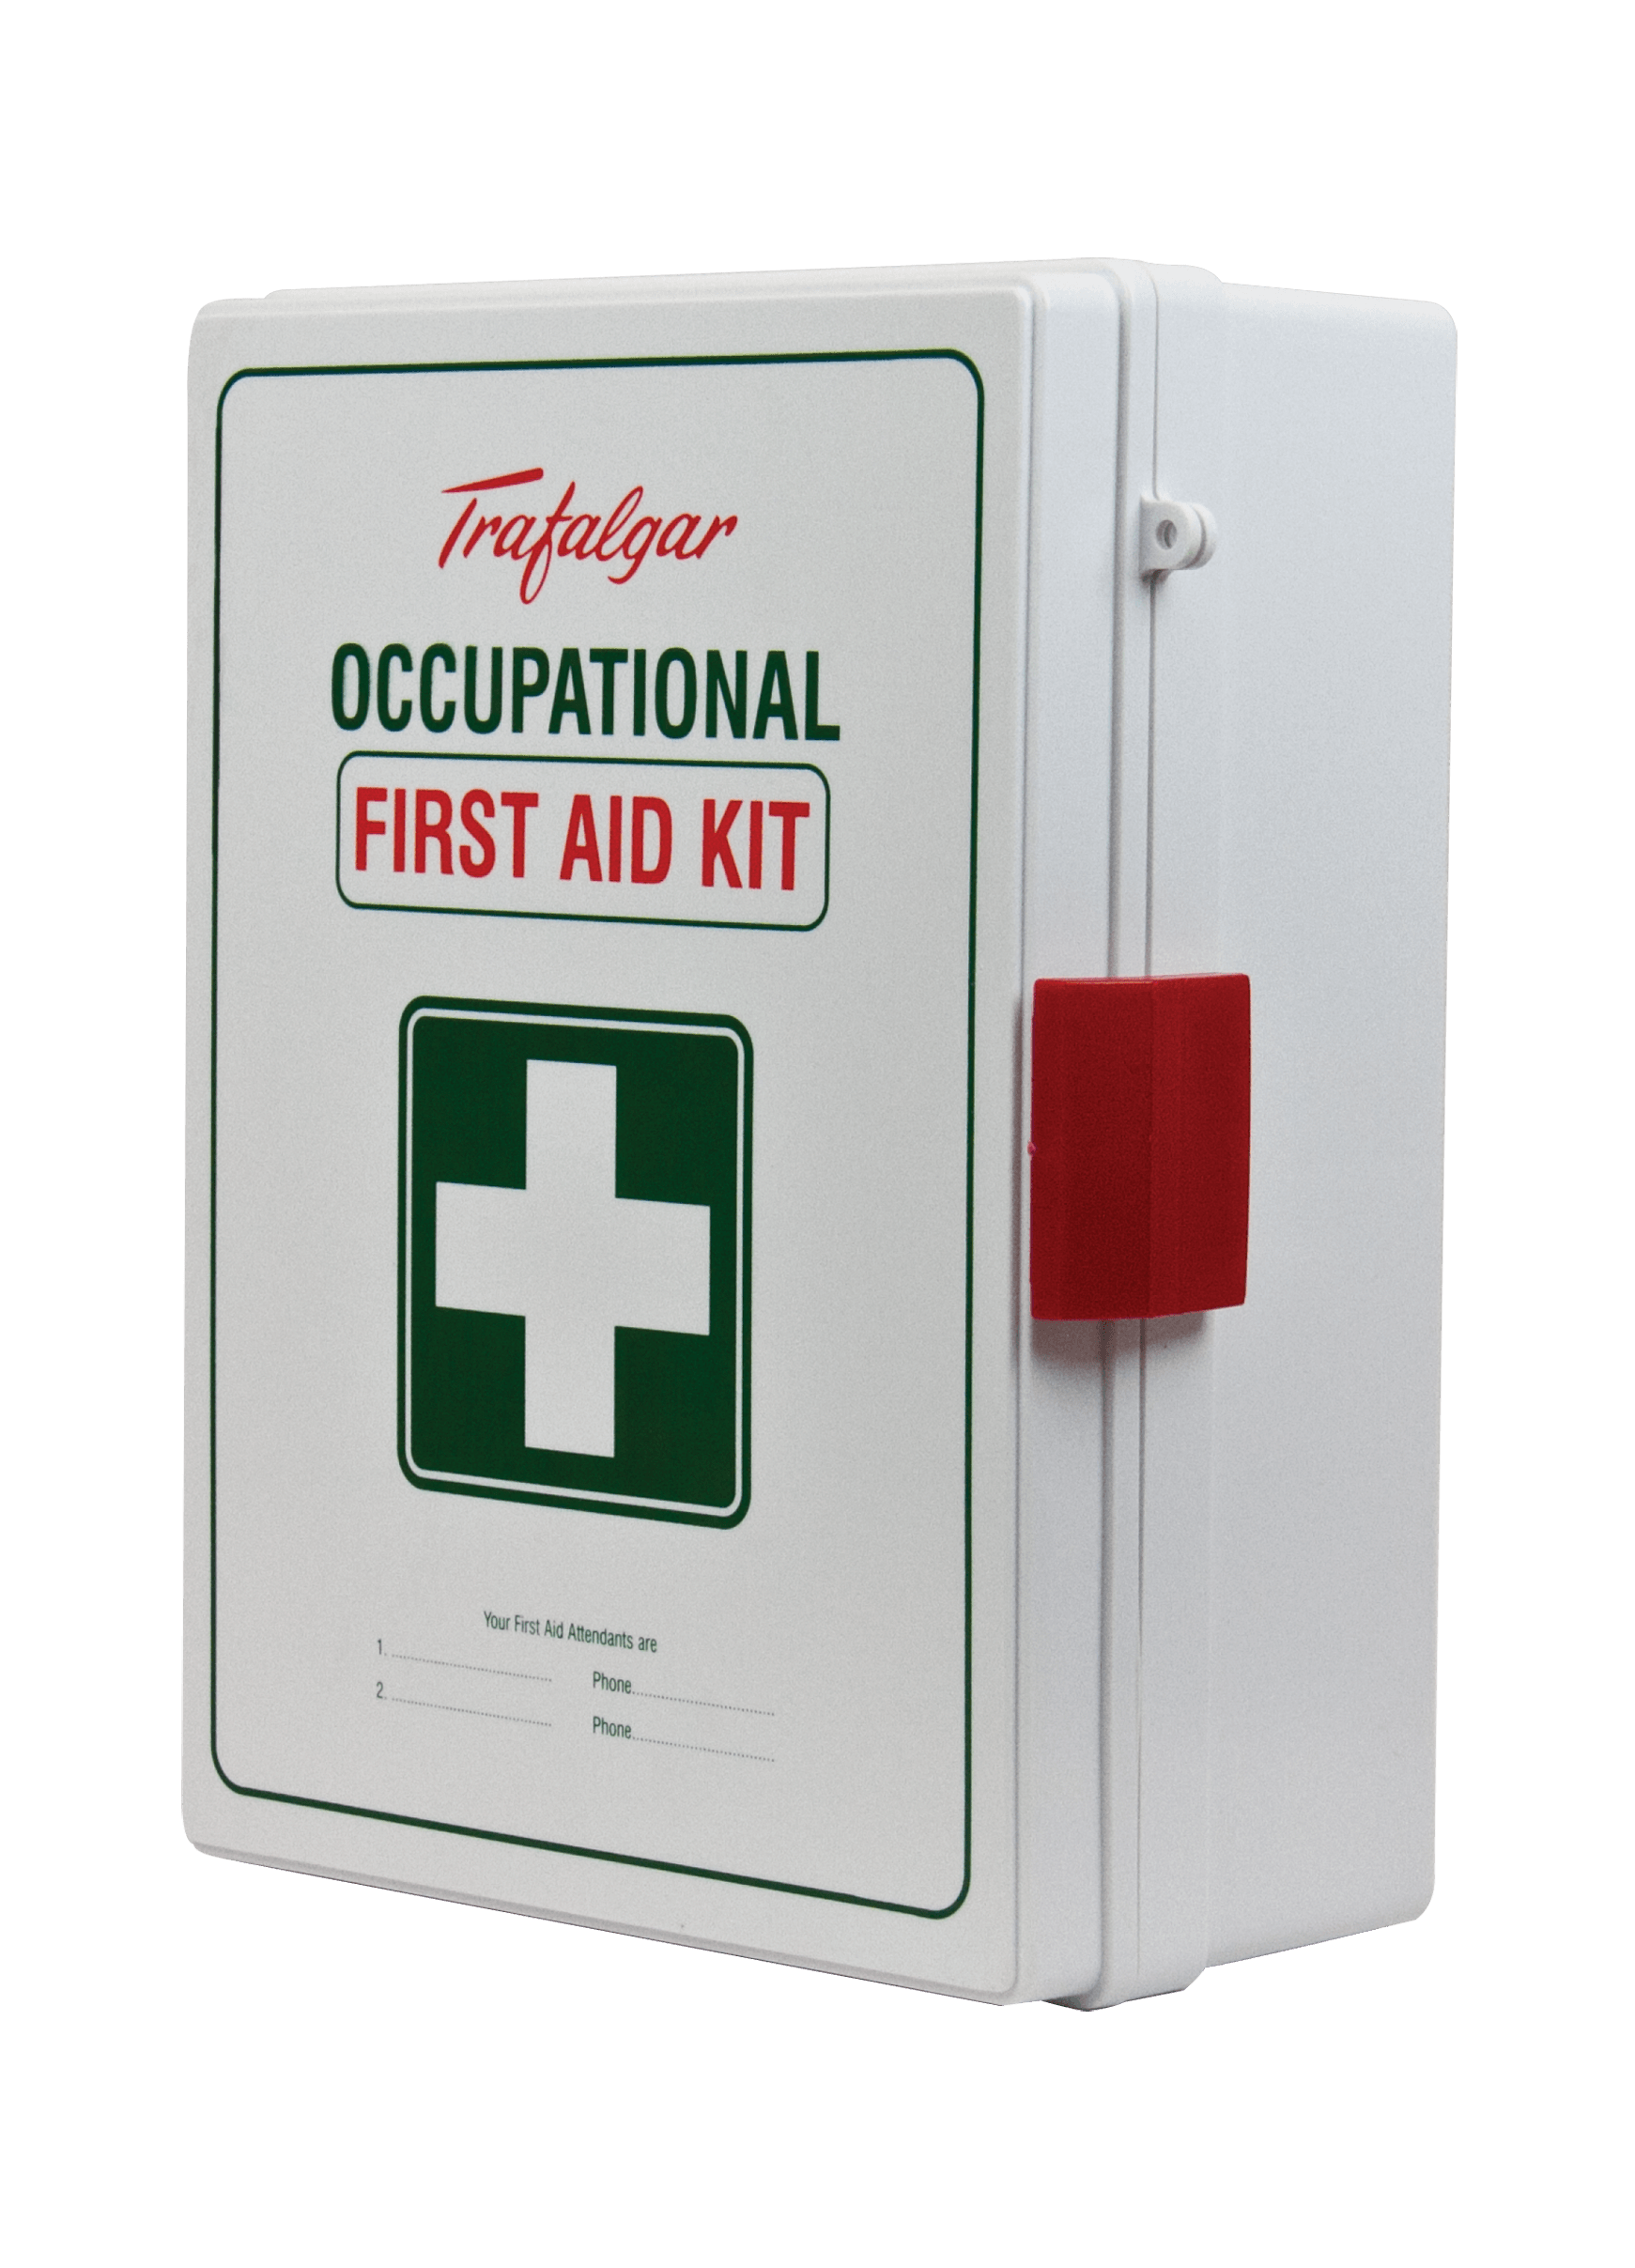 Pin By Buyesy On First Aid Kit First Aid Kit Aid Kit Best First Aid Kit